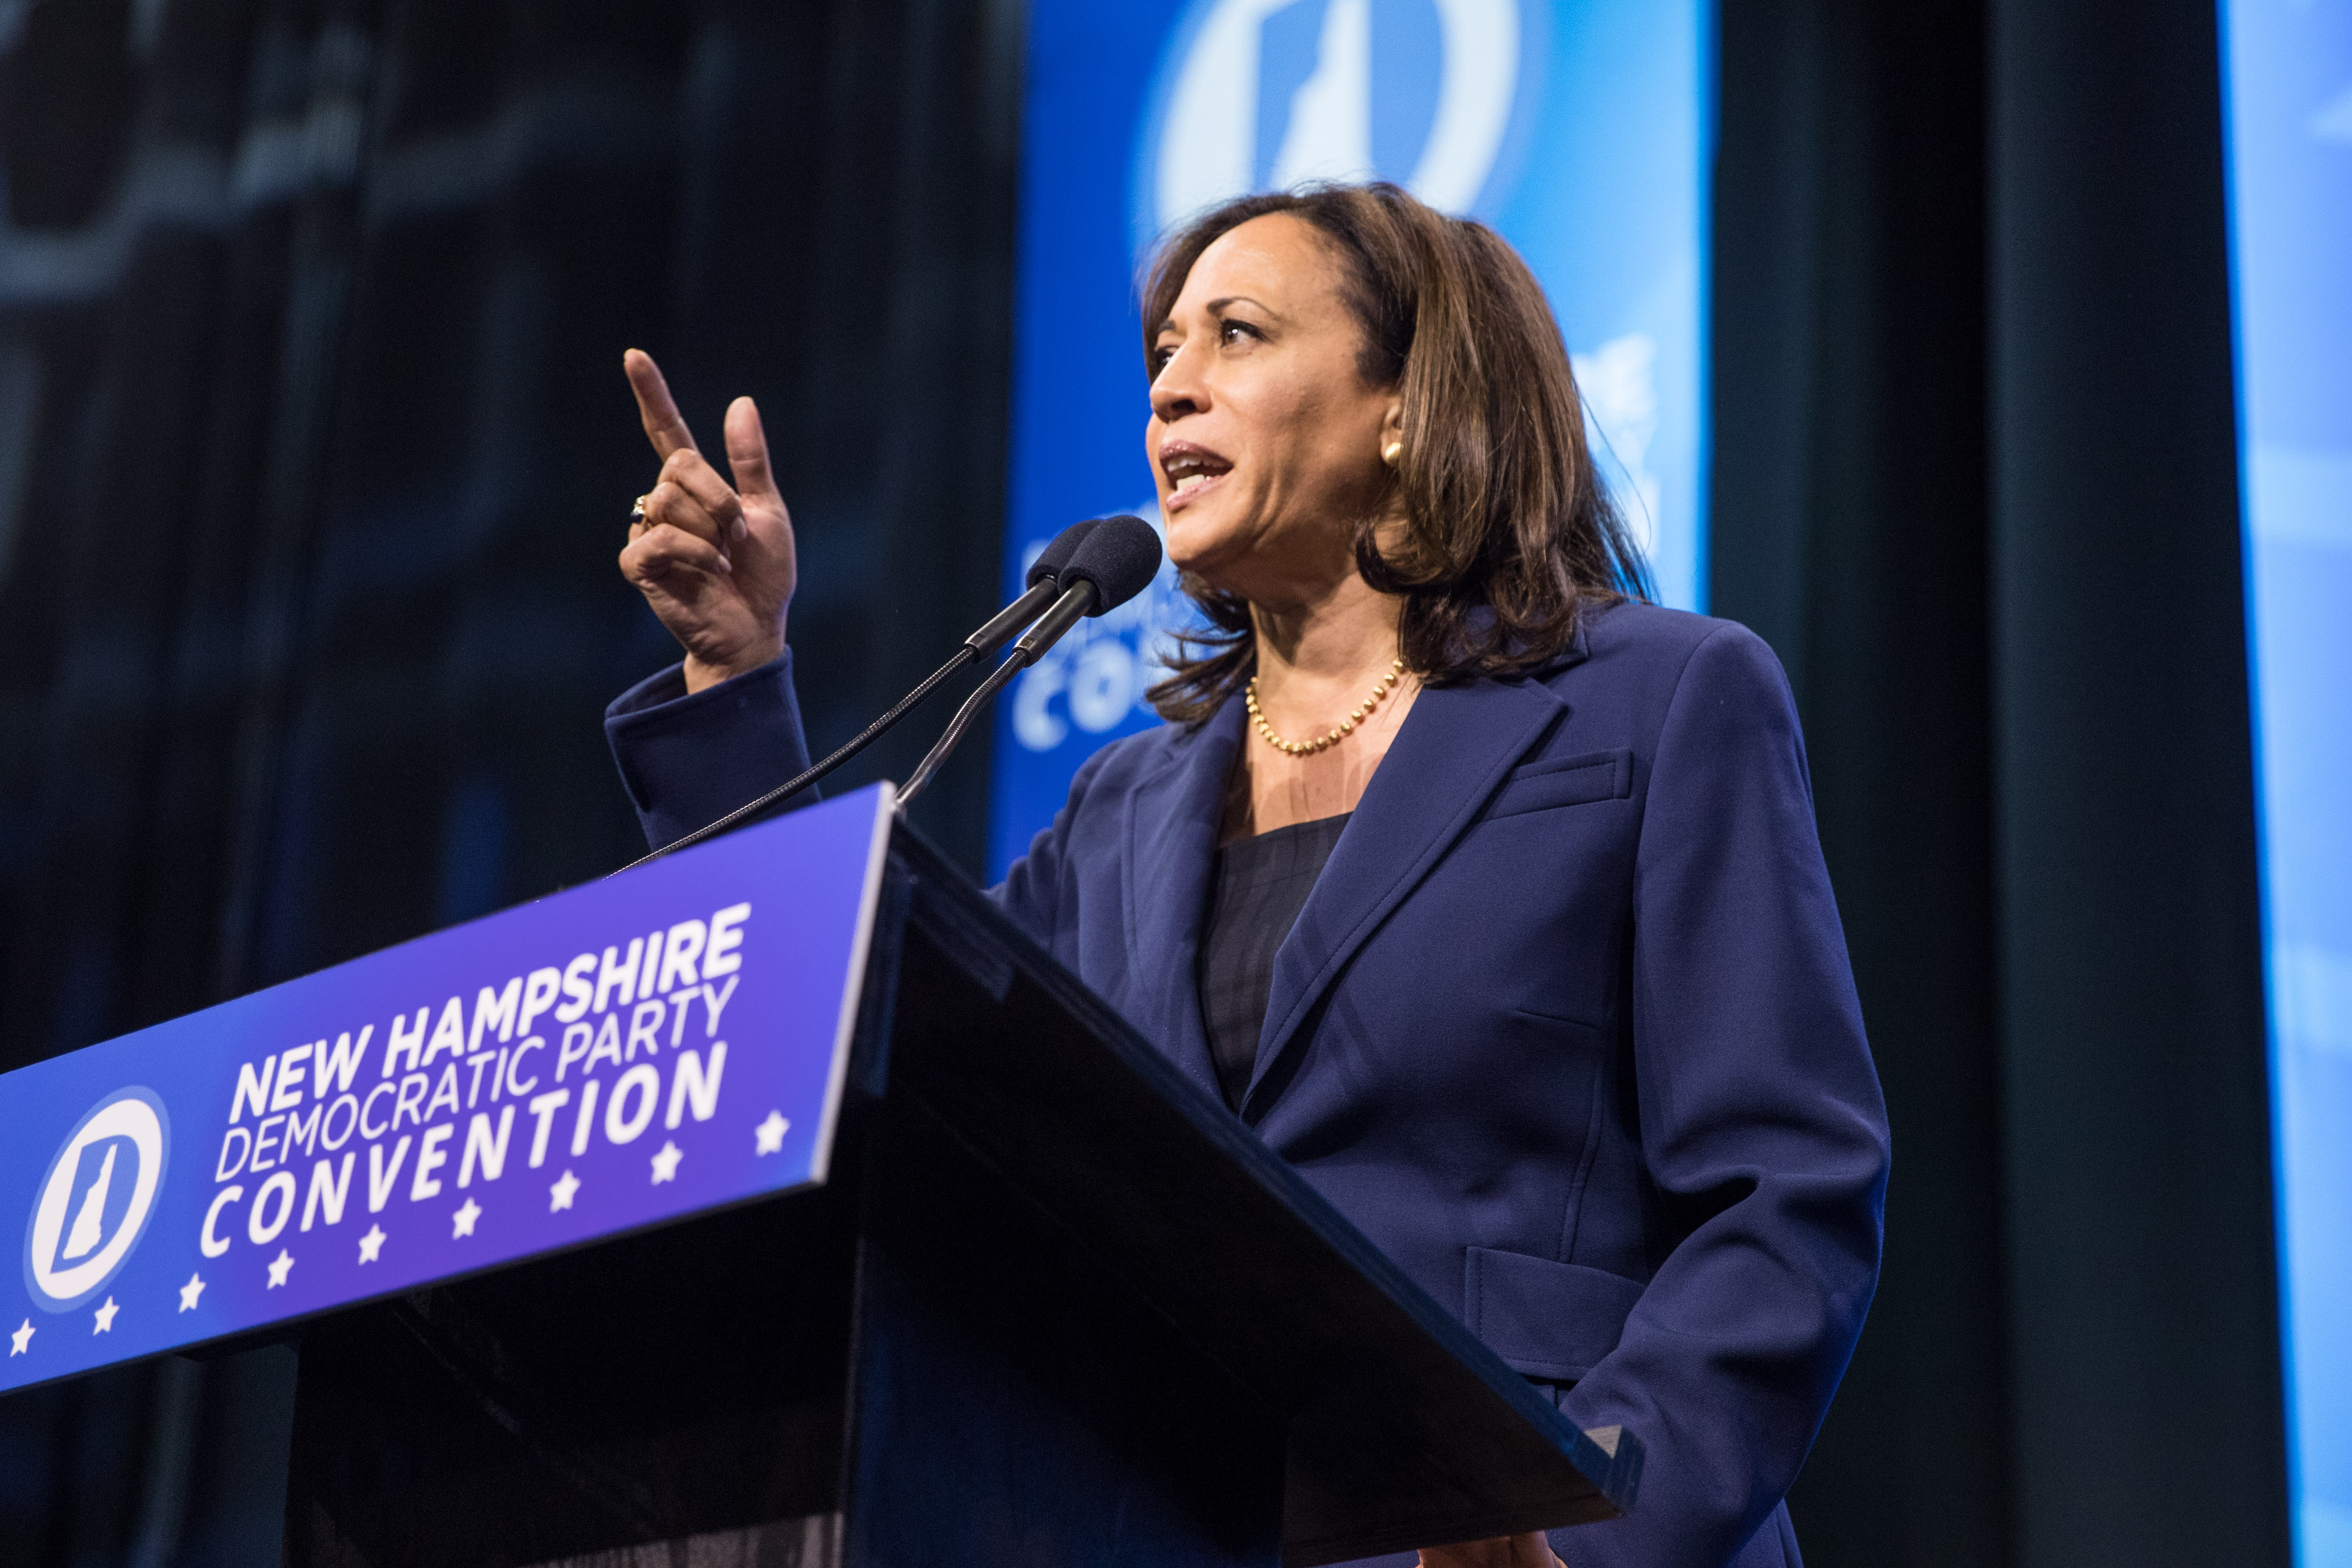 Kamala Harris speaking and pointing from behind a podium at the New Hampshire Democratic Party Convention.